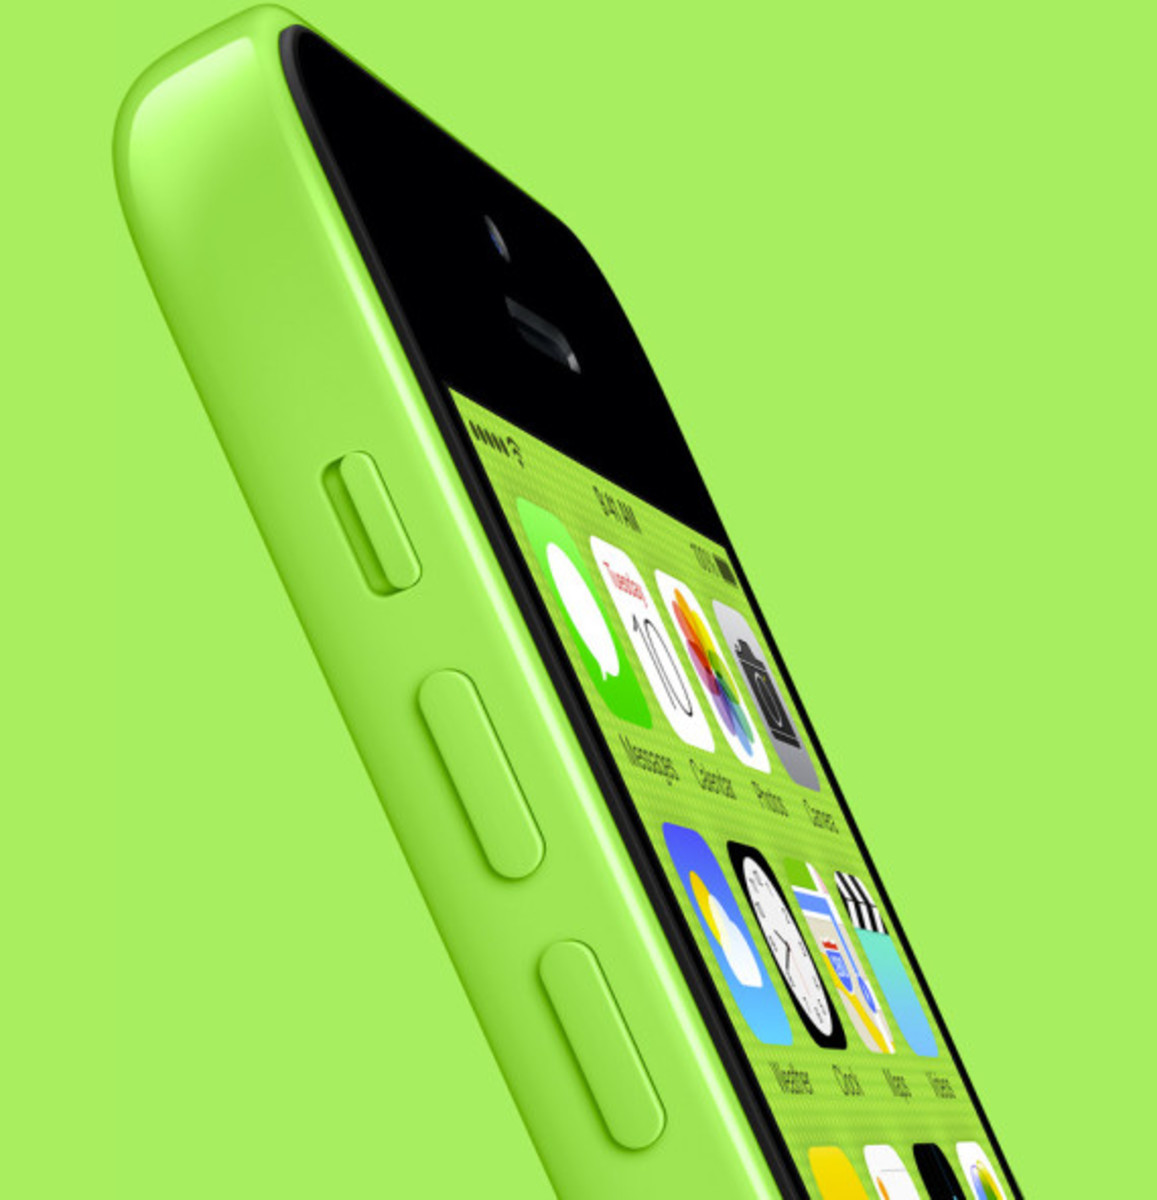 Apple iPhone 5C - Officially Unveiled - 7